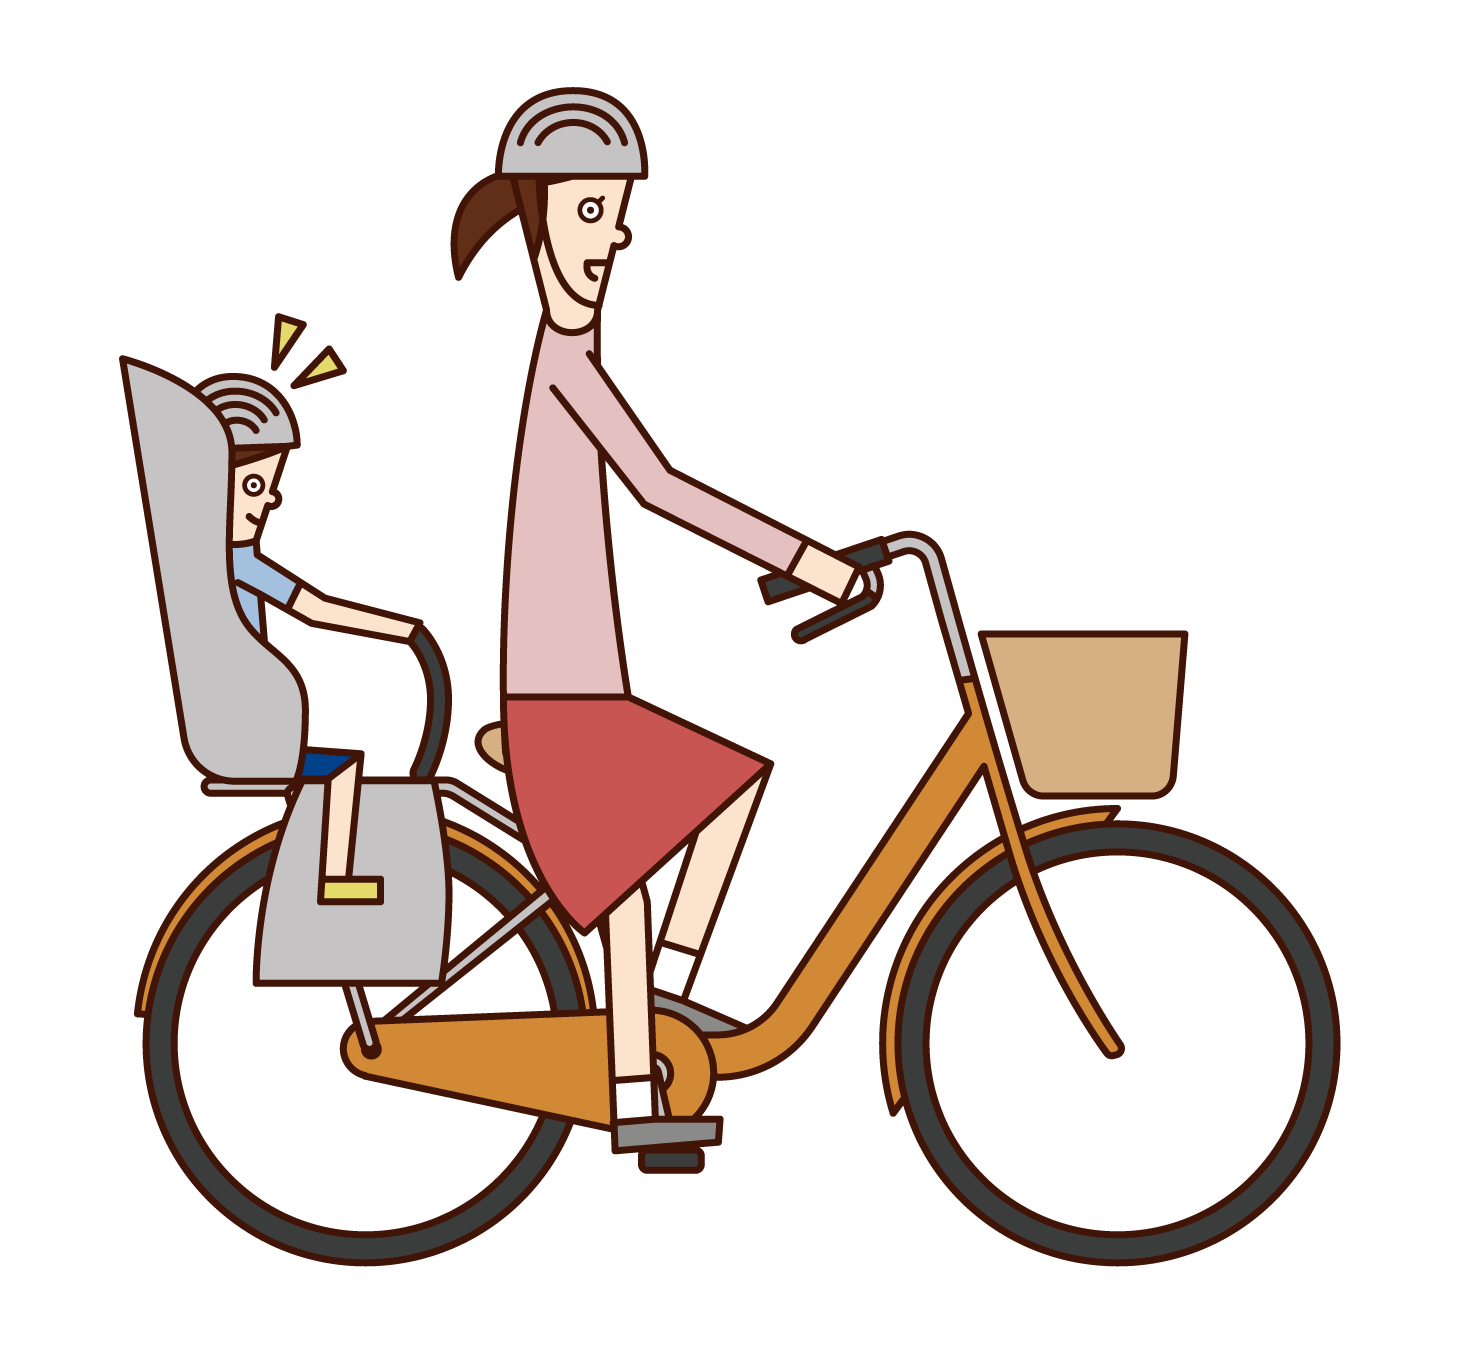 Illustration of a woman riding a bicycle with a child in a child seat